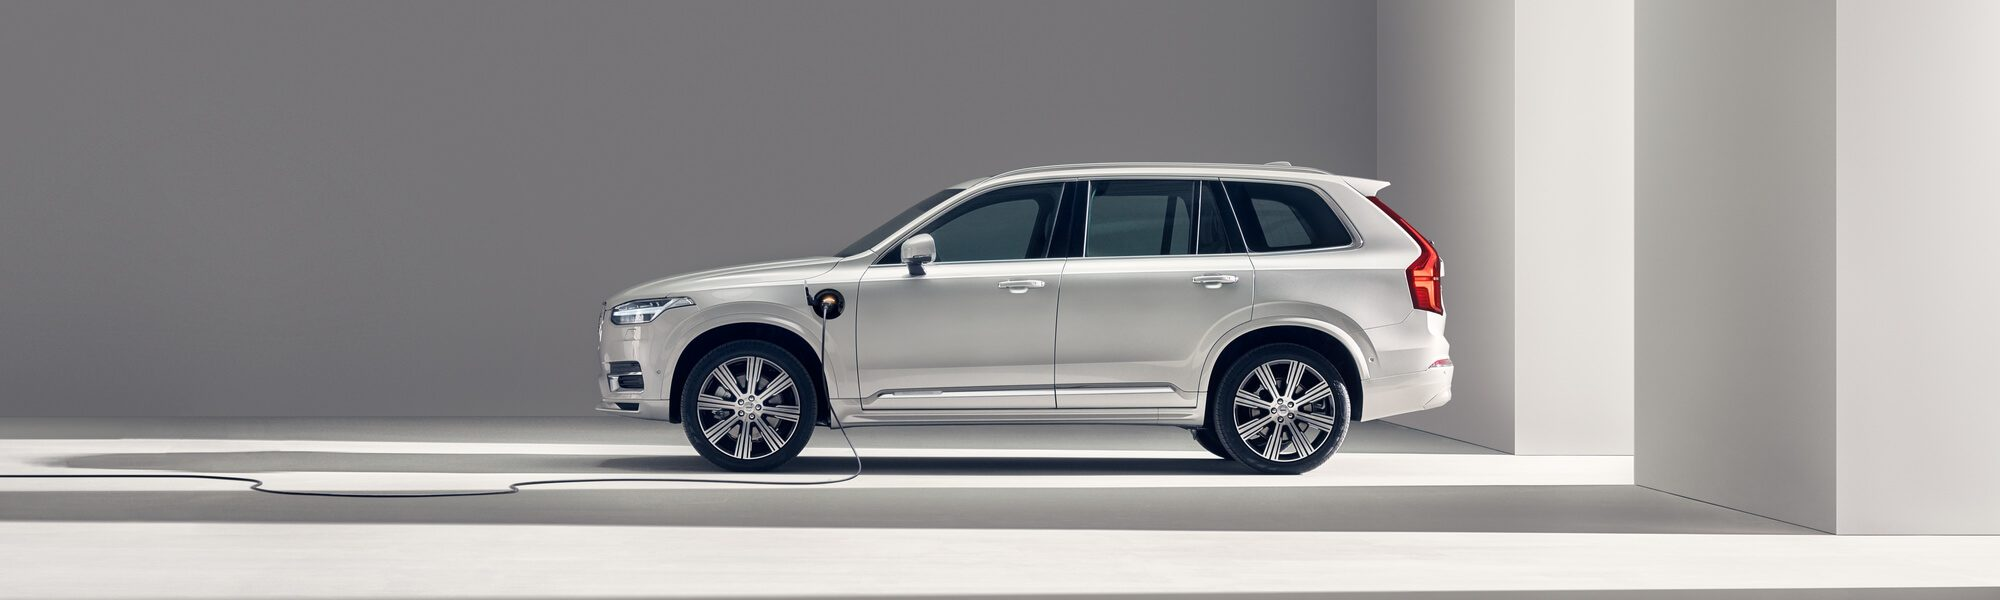 Volvo XC90 Plug-in Hybrid hero